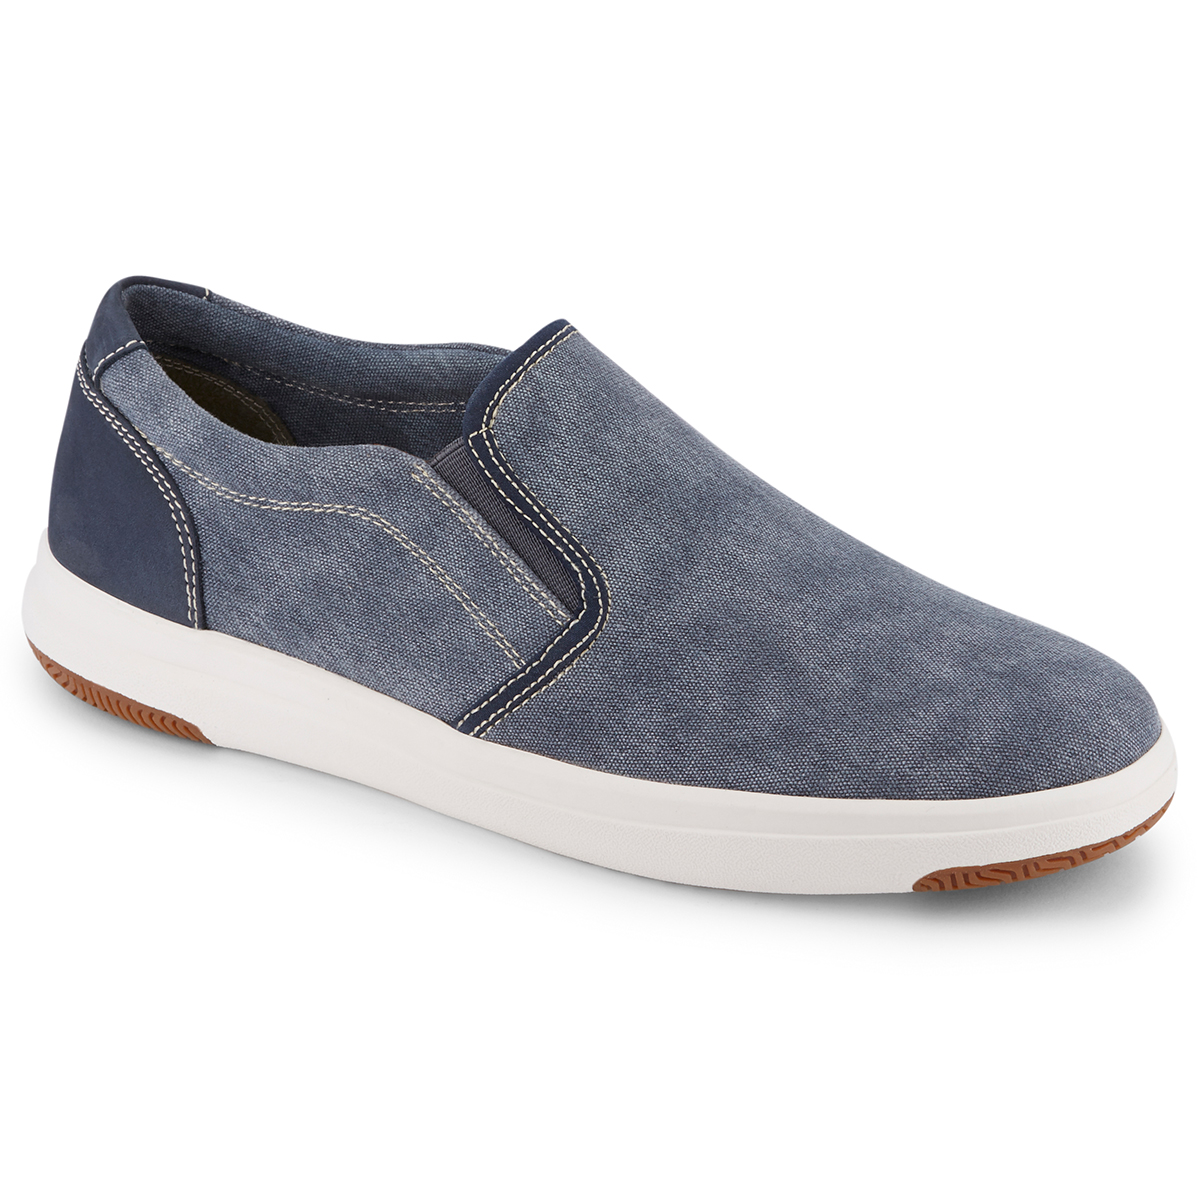 Dockers Men's Nobel Canvas Slip On Sneaker - Blue, 10